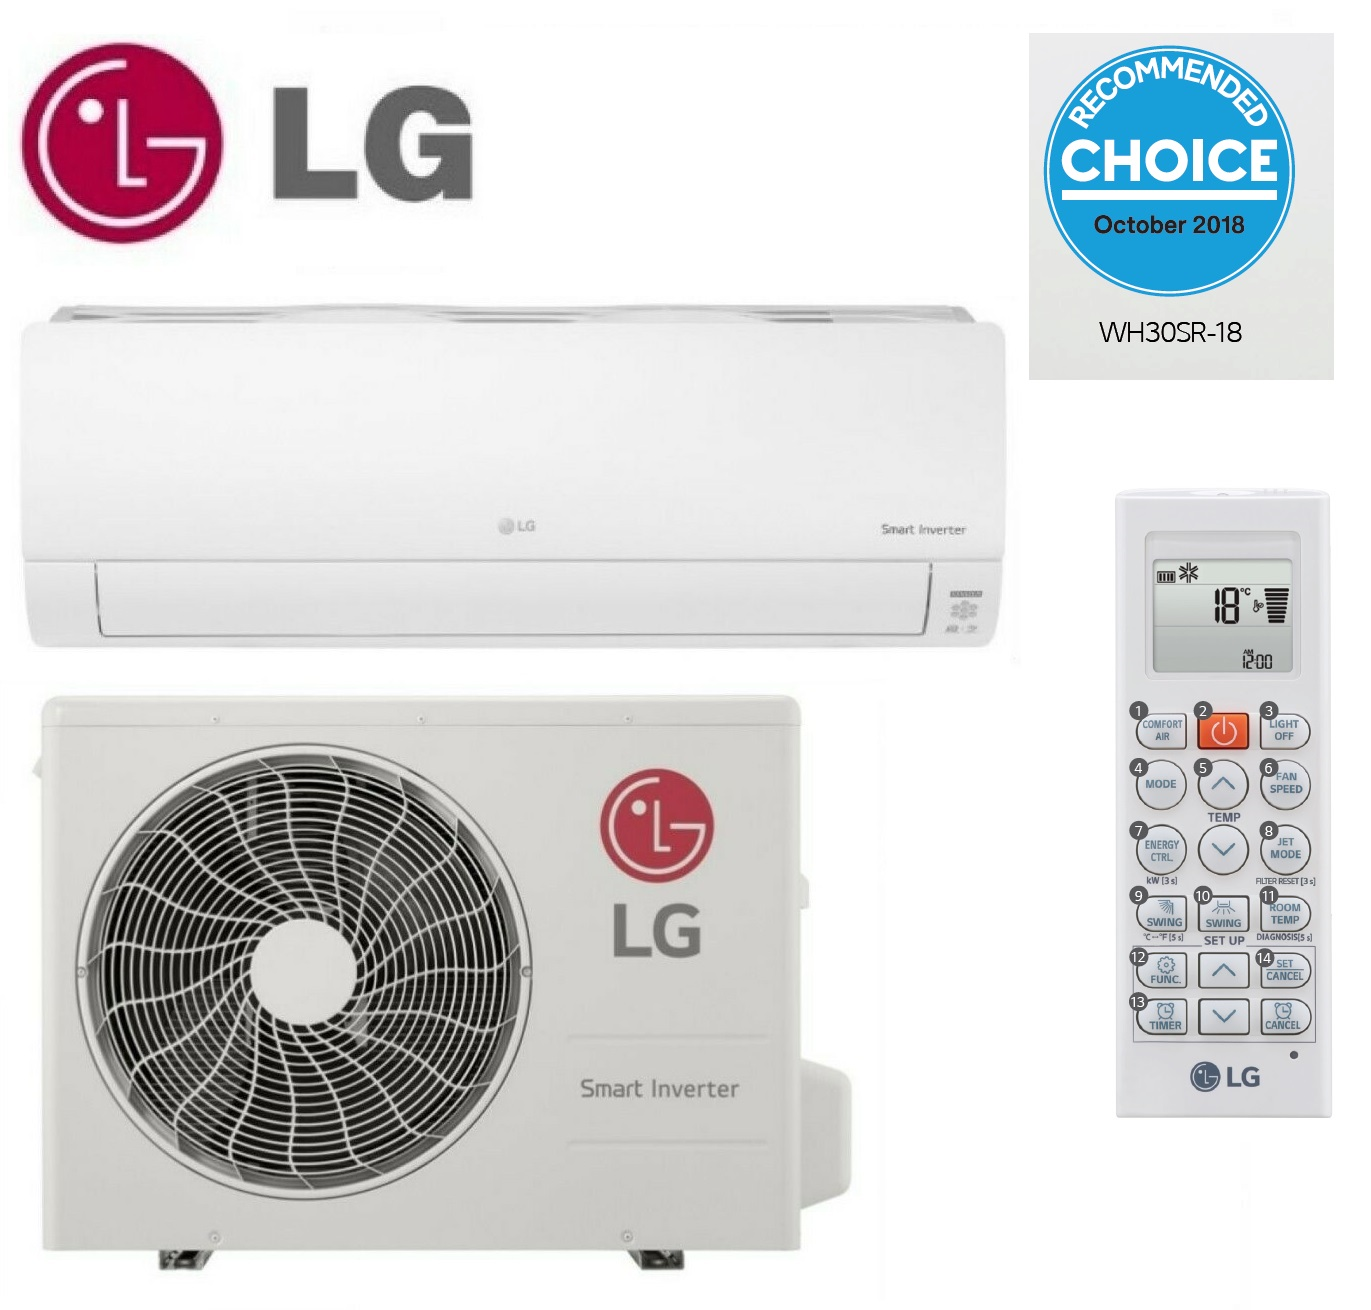 LG Air conditioner. Model no:WH30SR-18